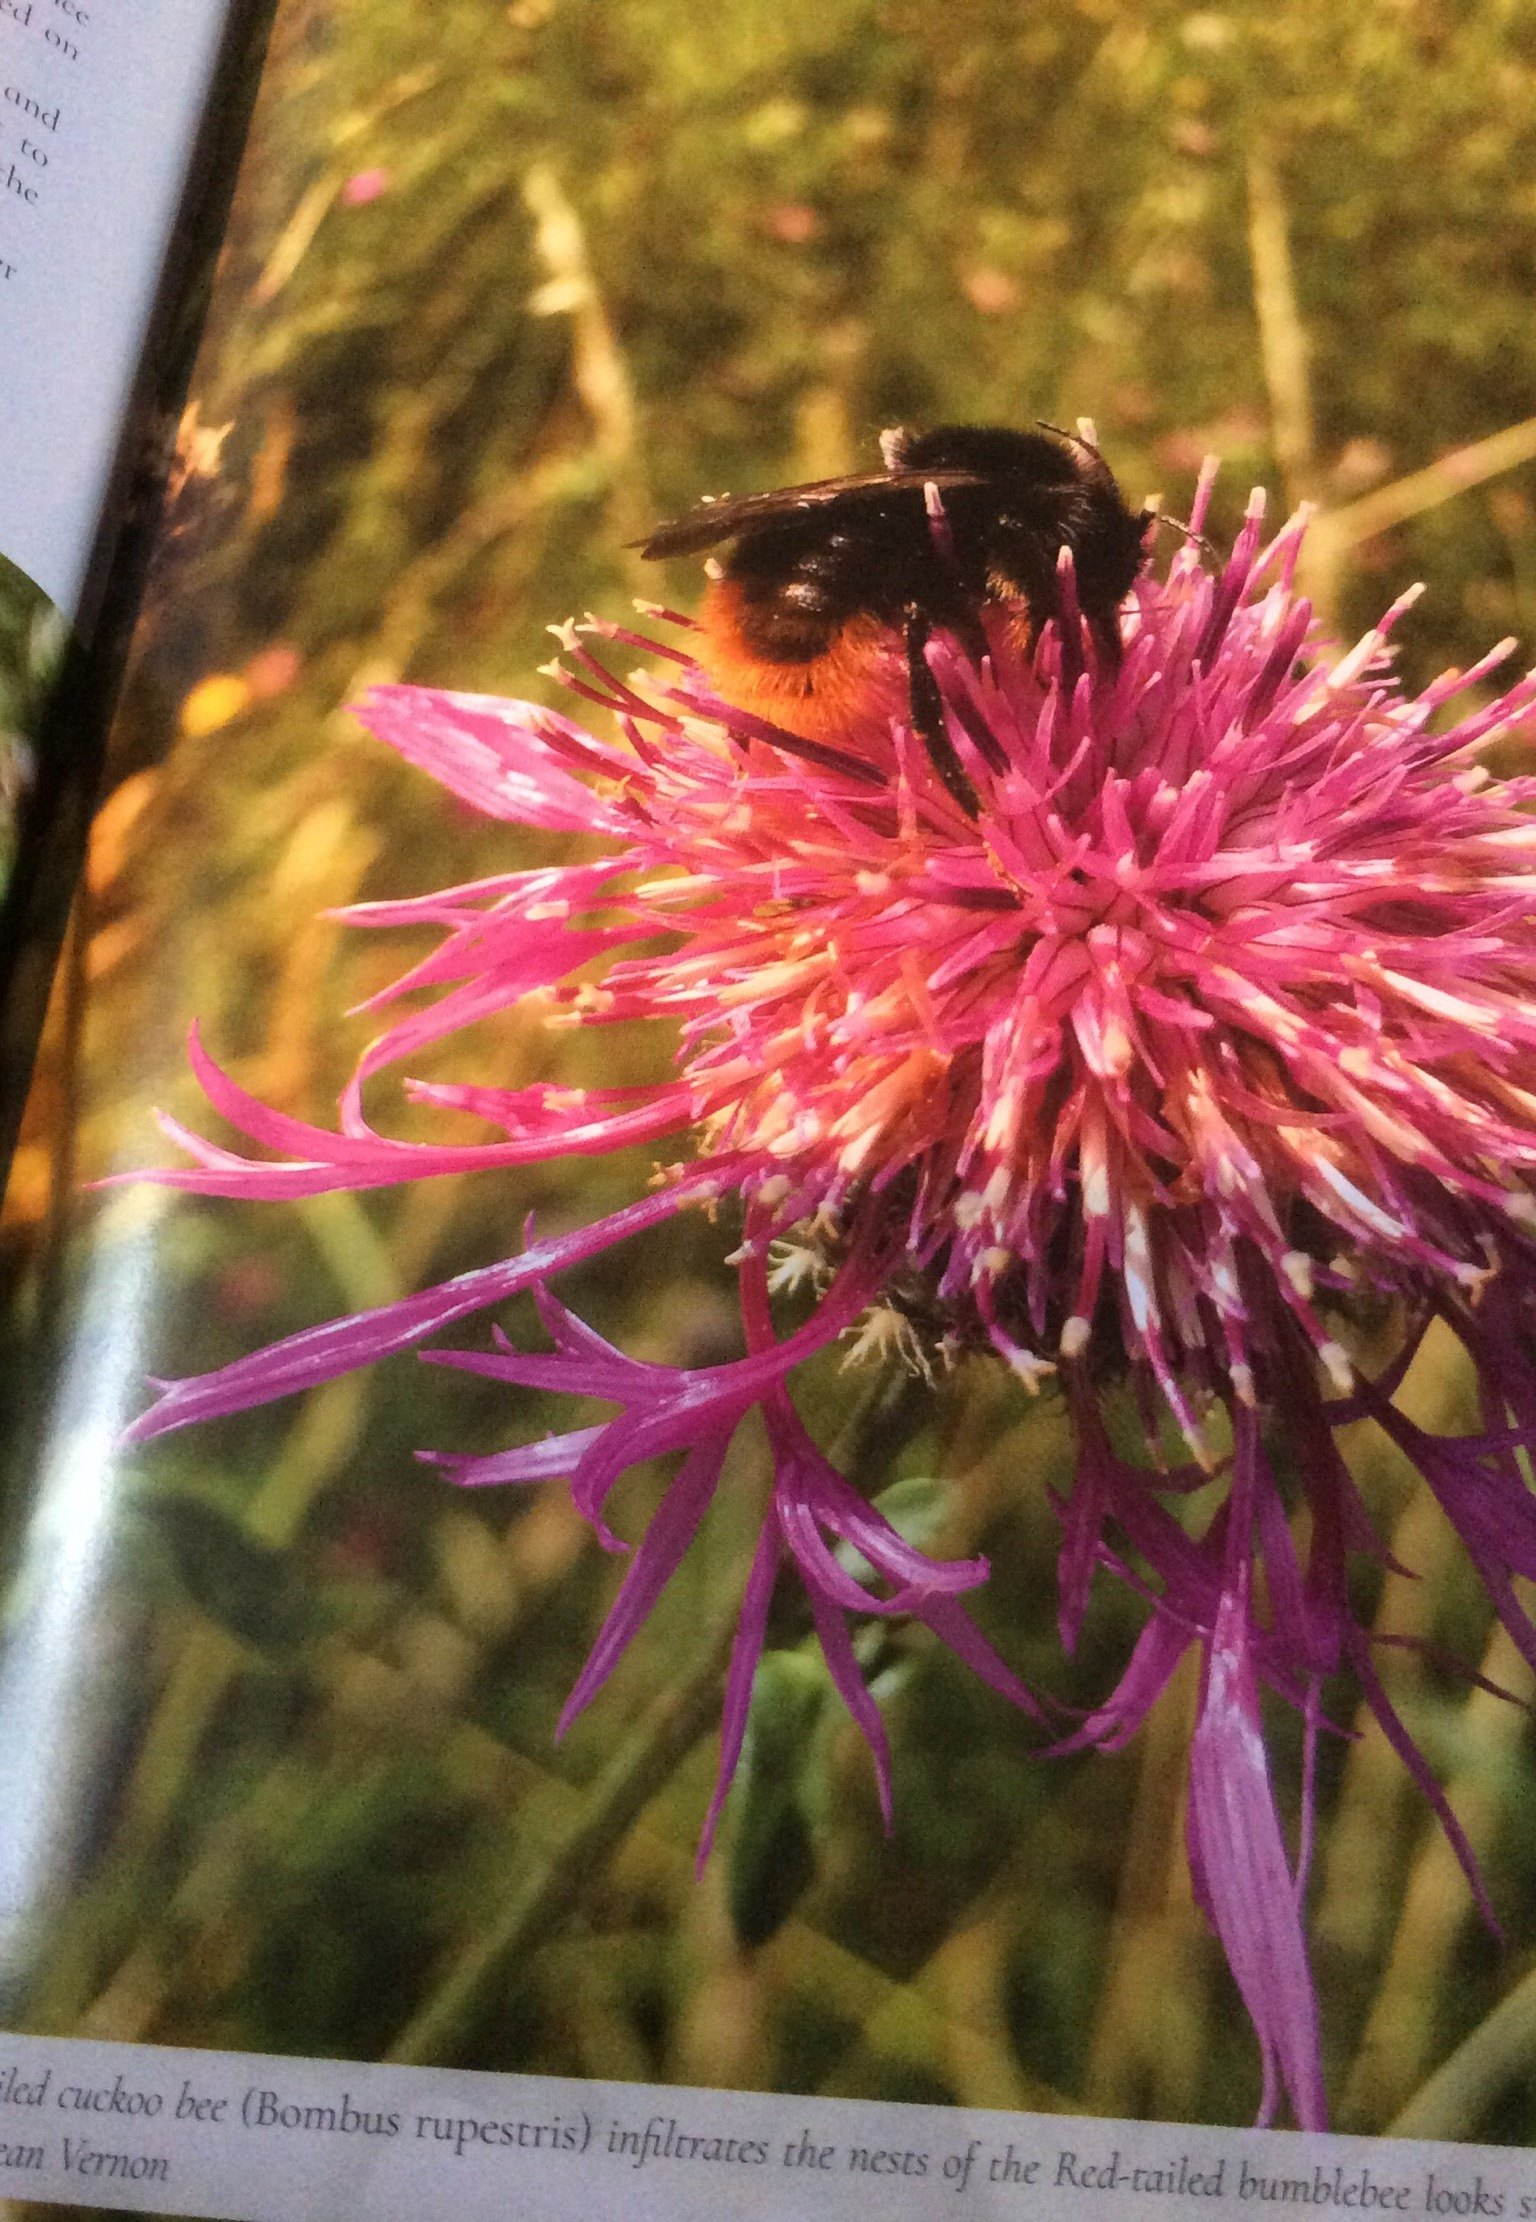 Red Tailed Cuckoo Bee, The Secret Lives Of Garden Bees